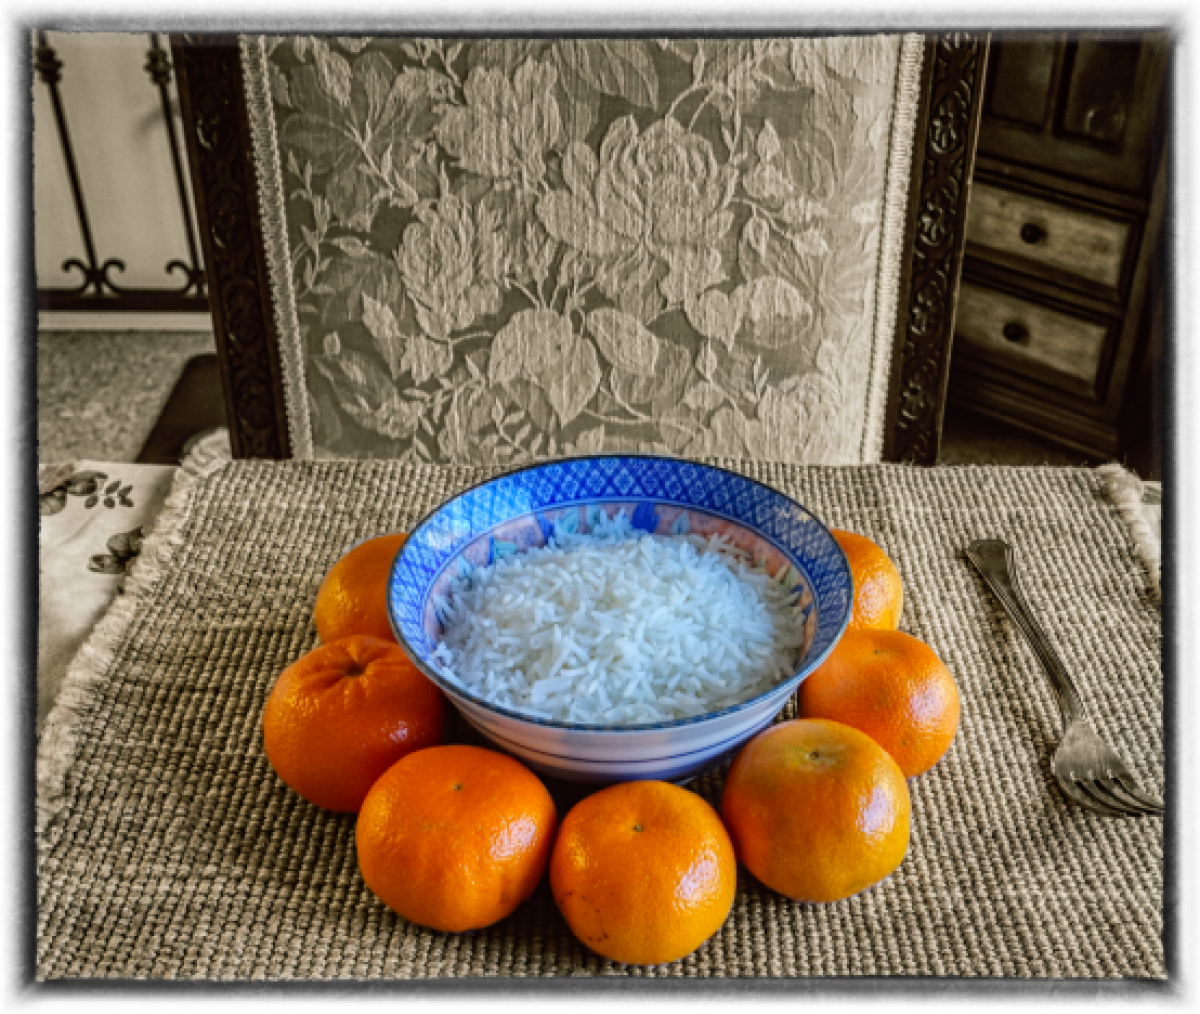 A Cup of Rice